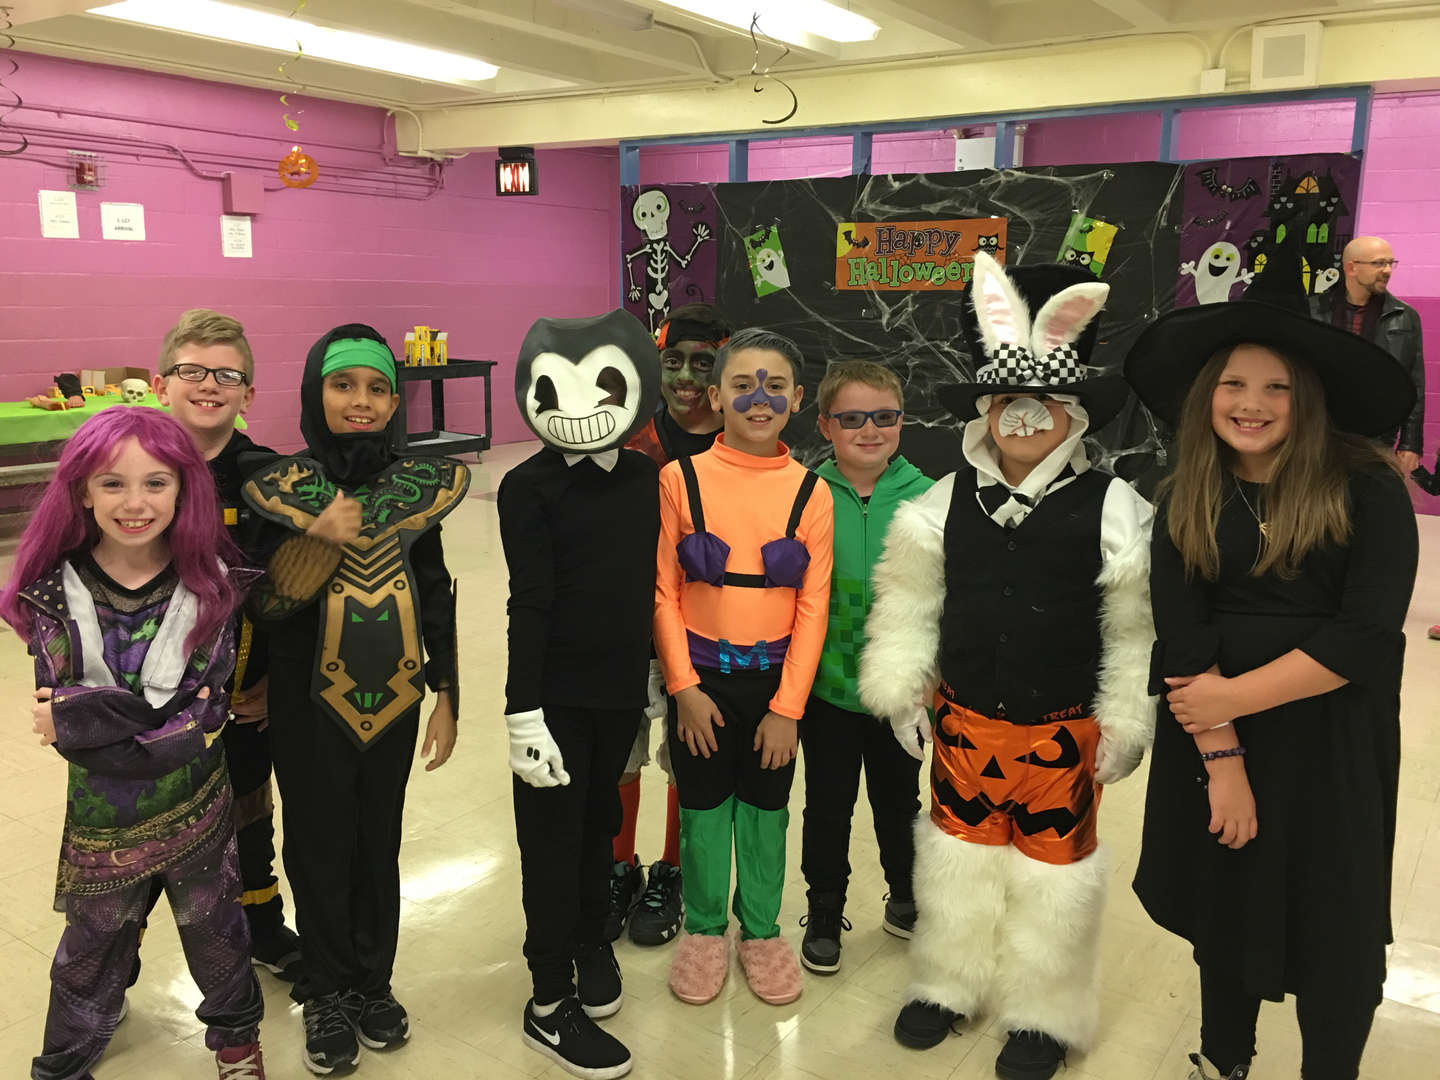 a group of students in costume